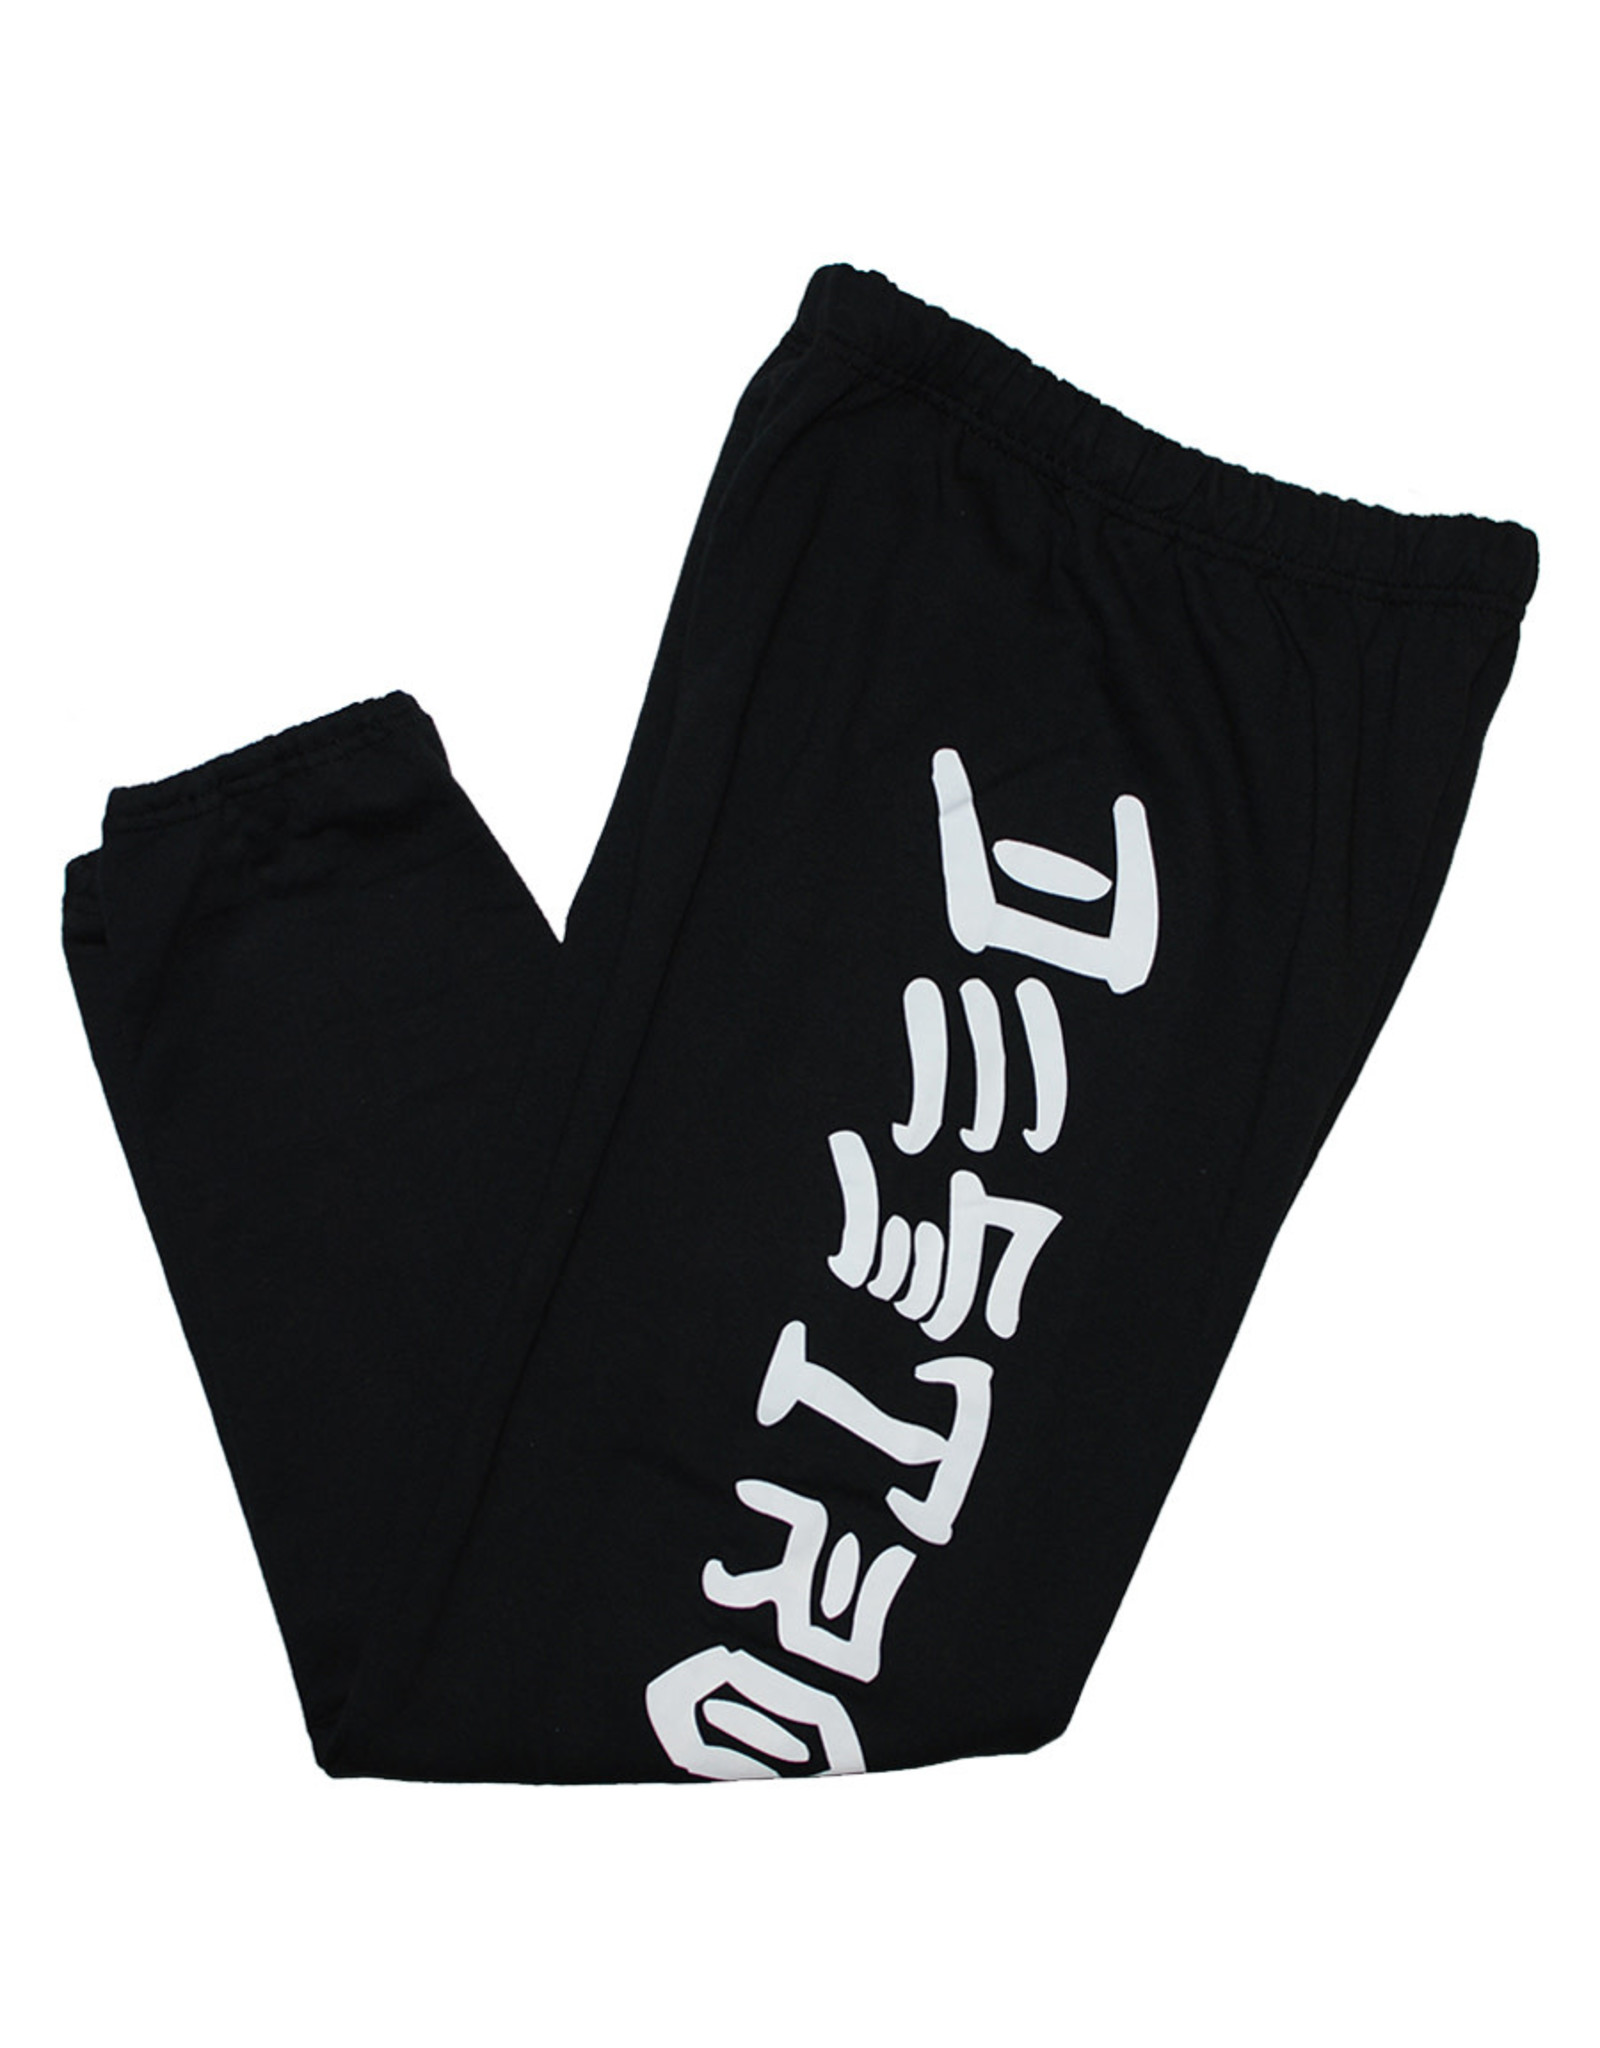 Thrasher Thrasher Sweatpants Sk8 And Destroy (Black)